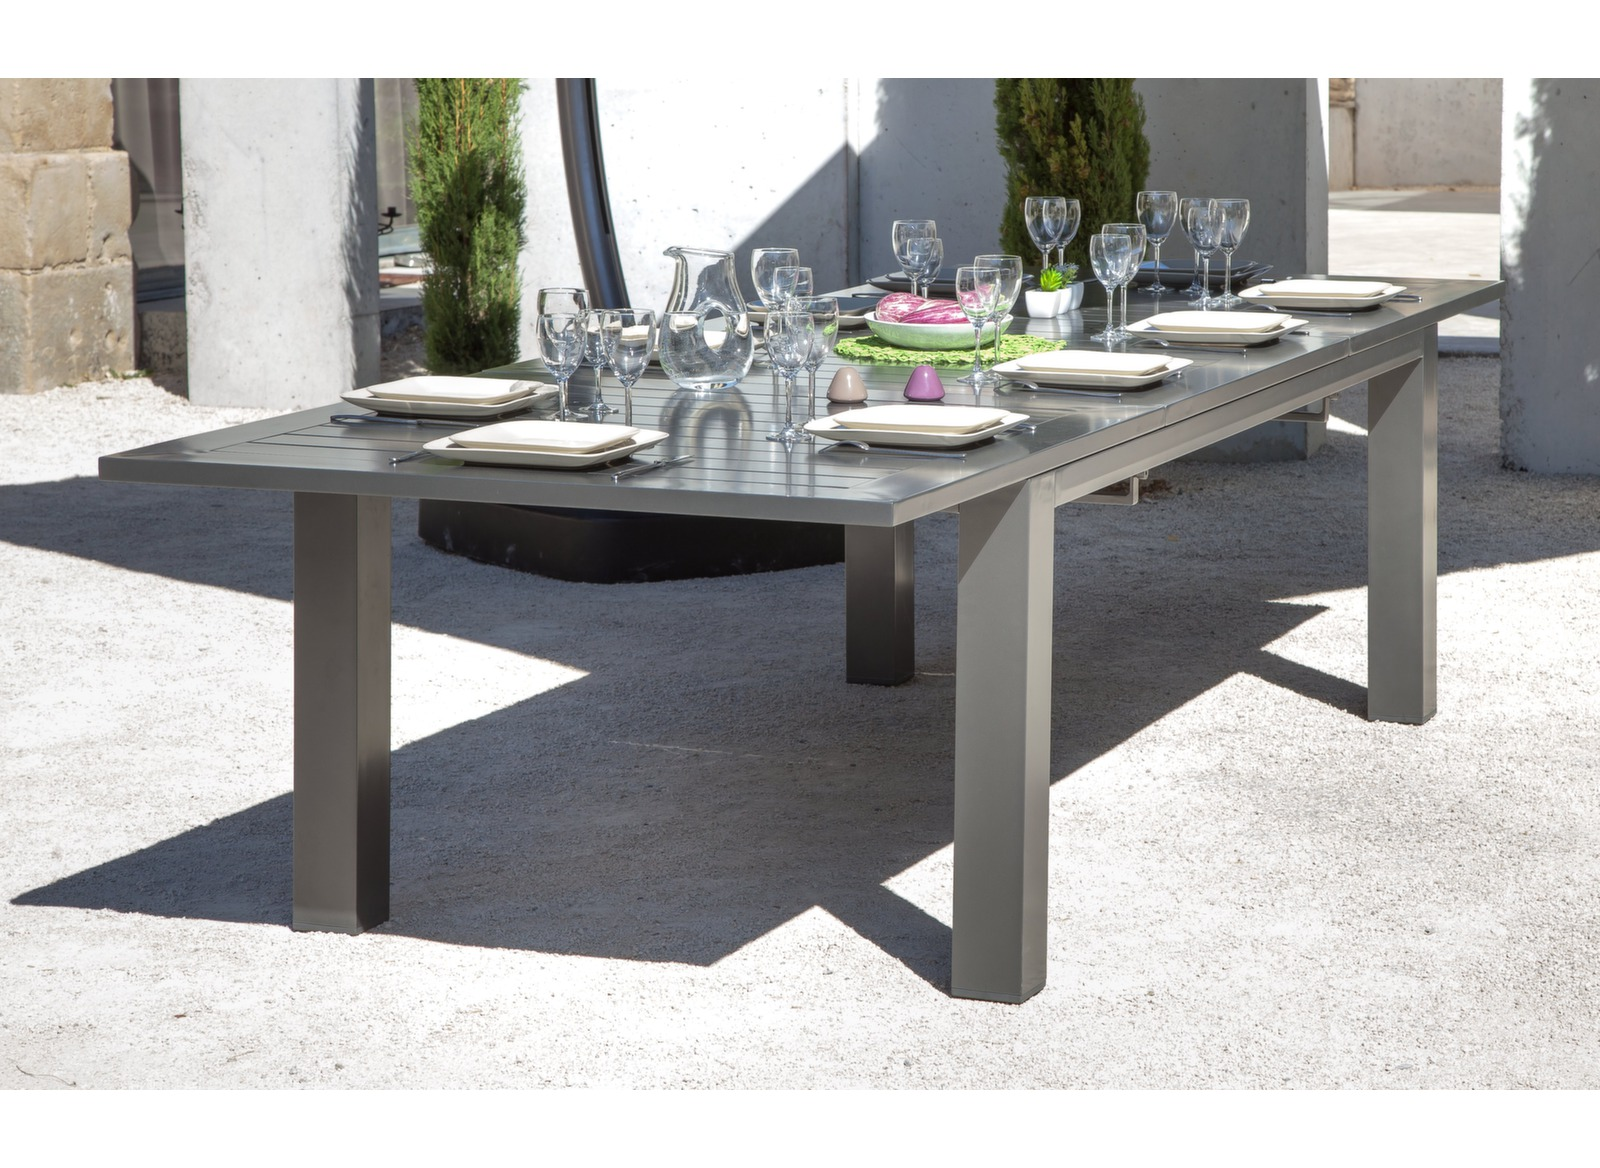 table de jardin aluminium plateau ciment table de jardin. Black Bedroom Furniture Sets. Home Design Ideas